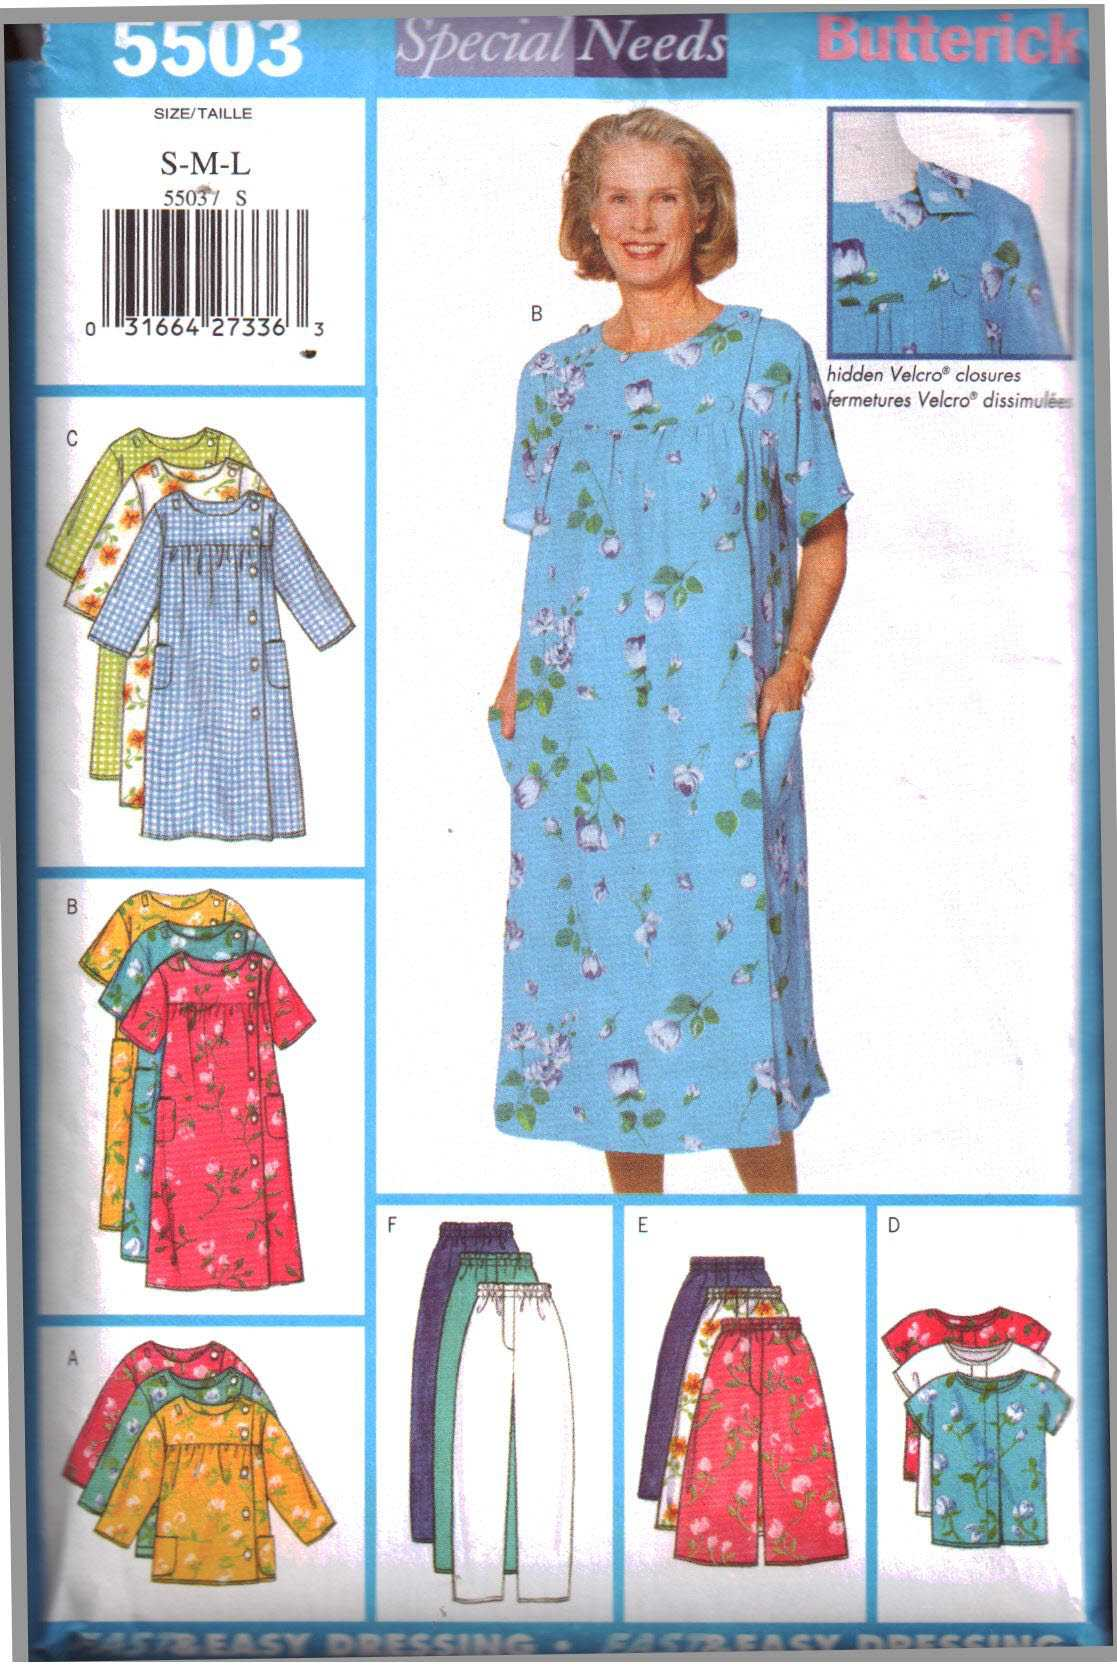 5343 Butterick SEWING Pattern Girls Top Shorts Skirt Fashion Addition OOP SEW FF